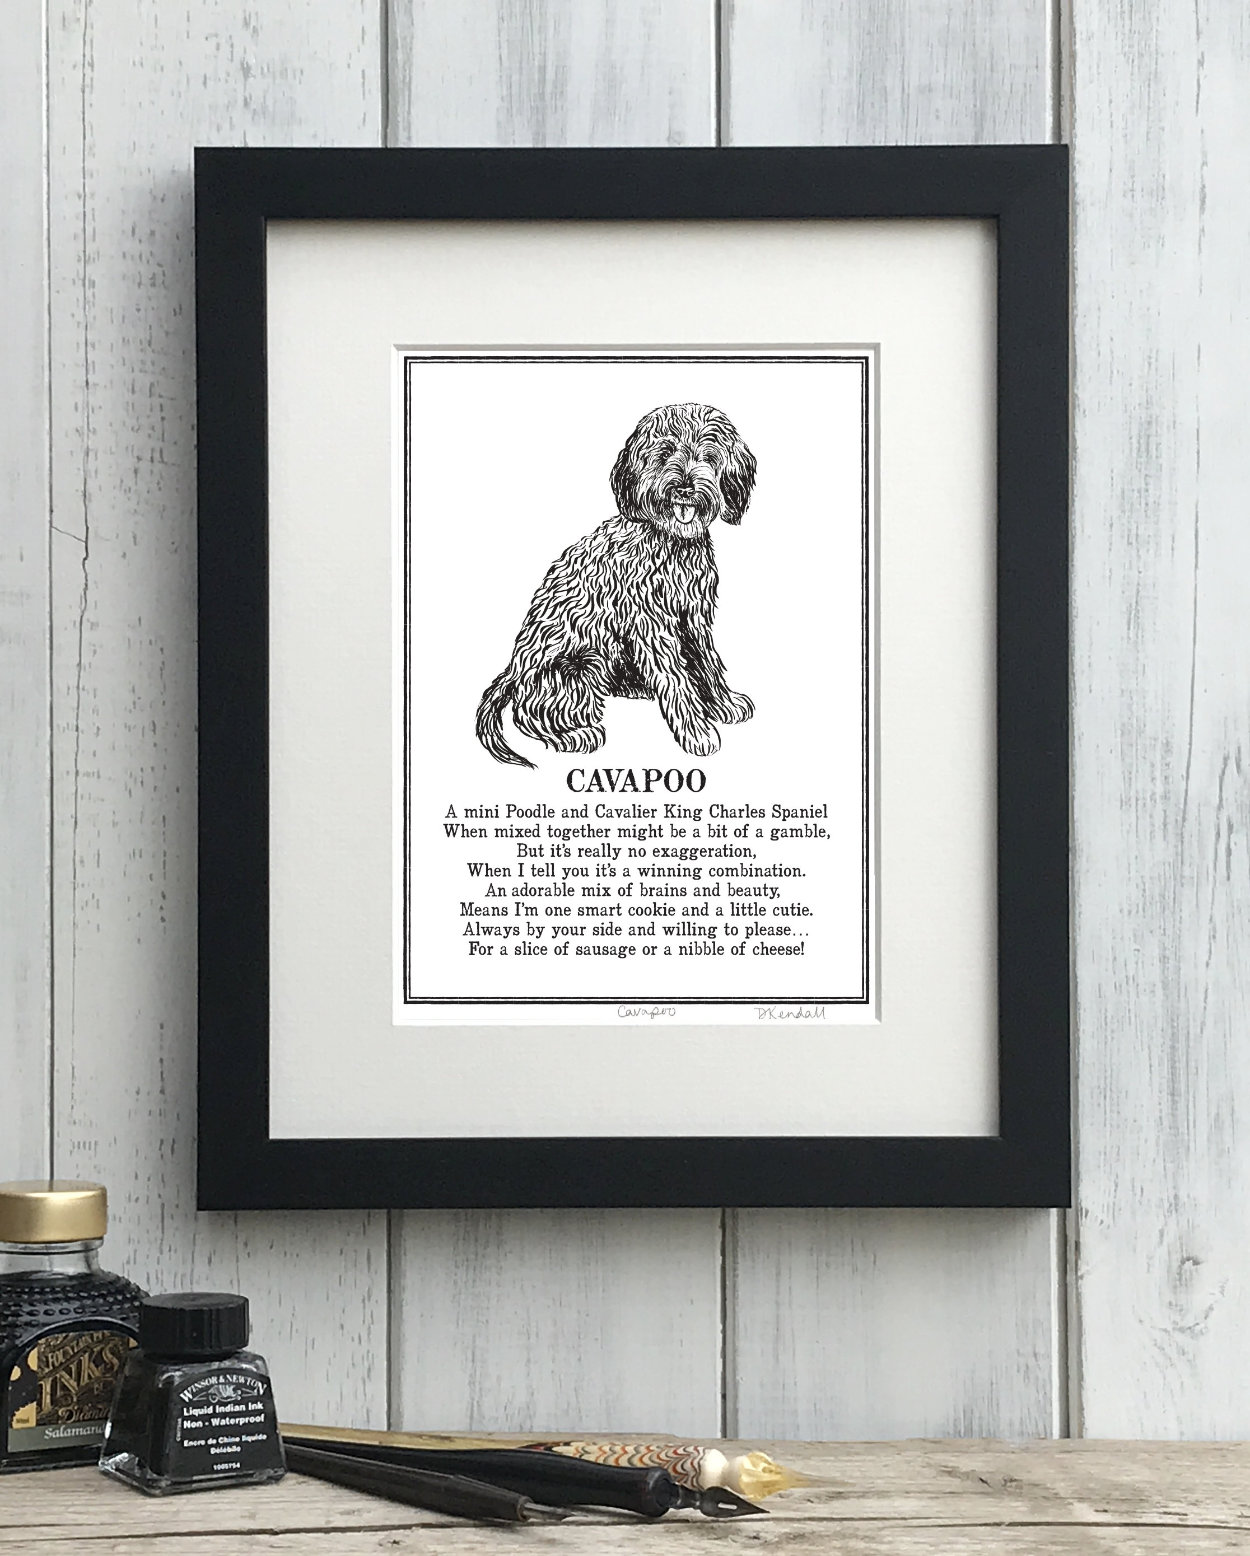 Cavapoo print illustrated poem by The Enlightened Hound